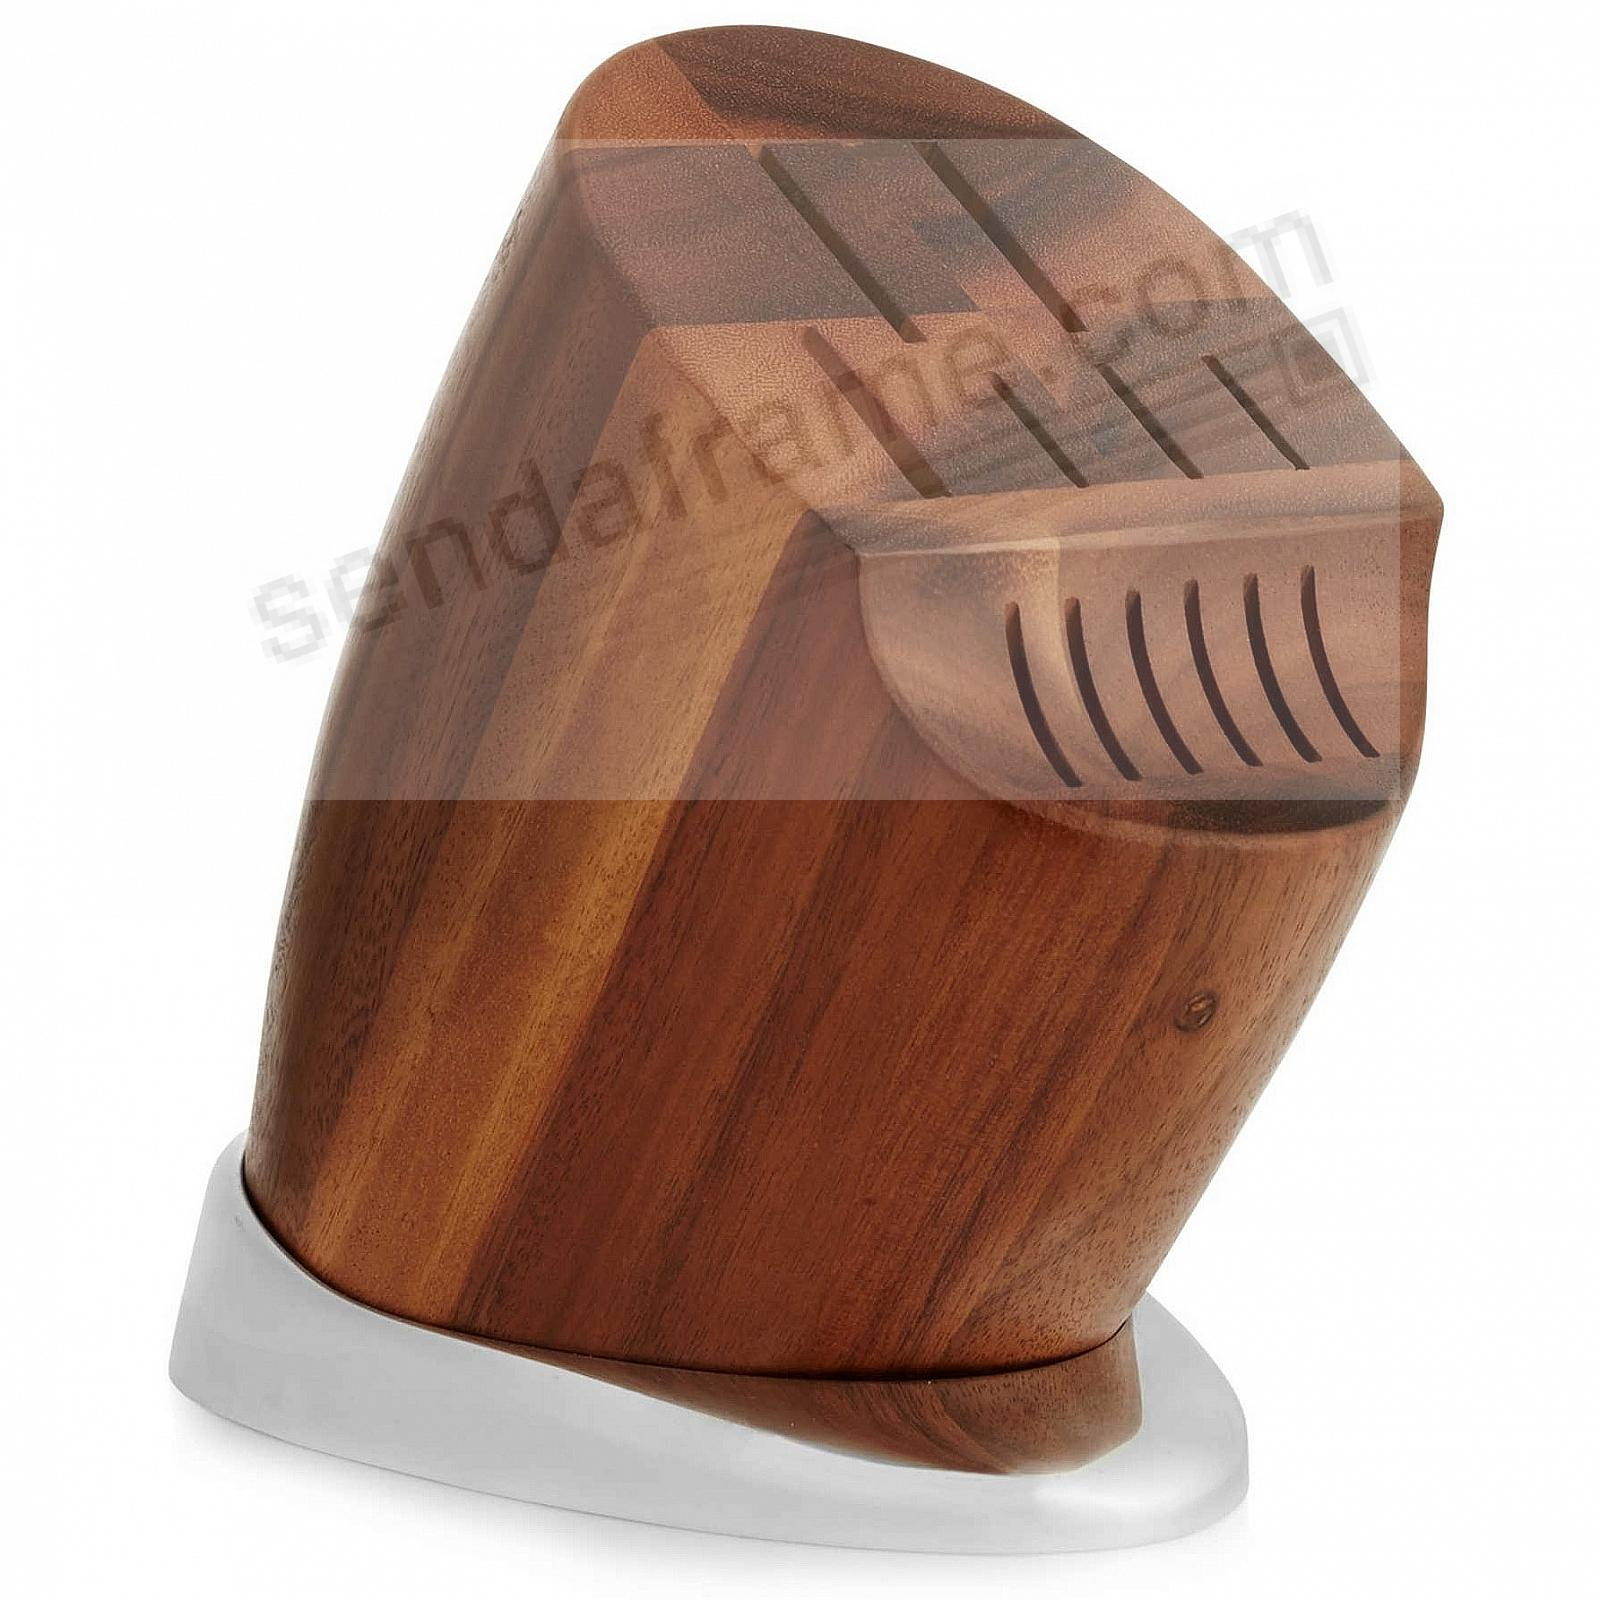 The BREEZE KNIFE BLOCK by Nambe®